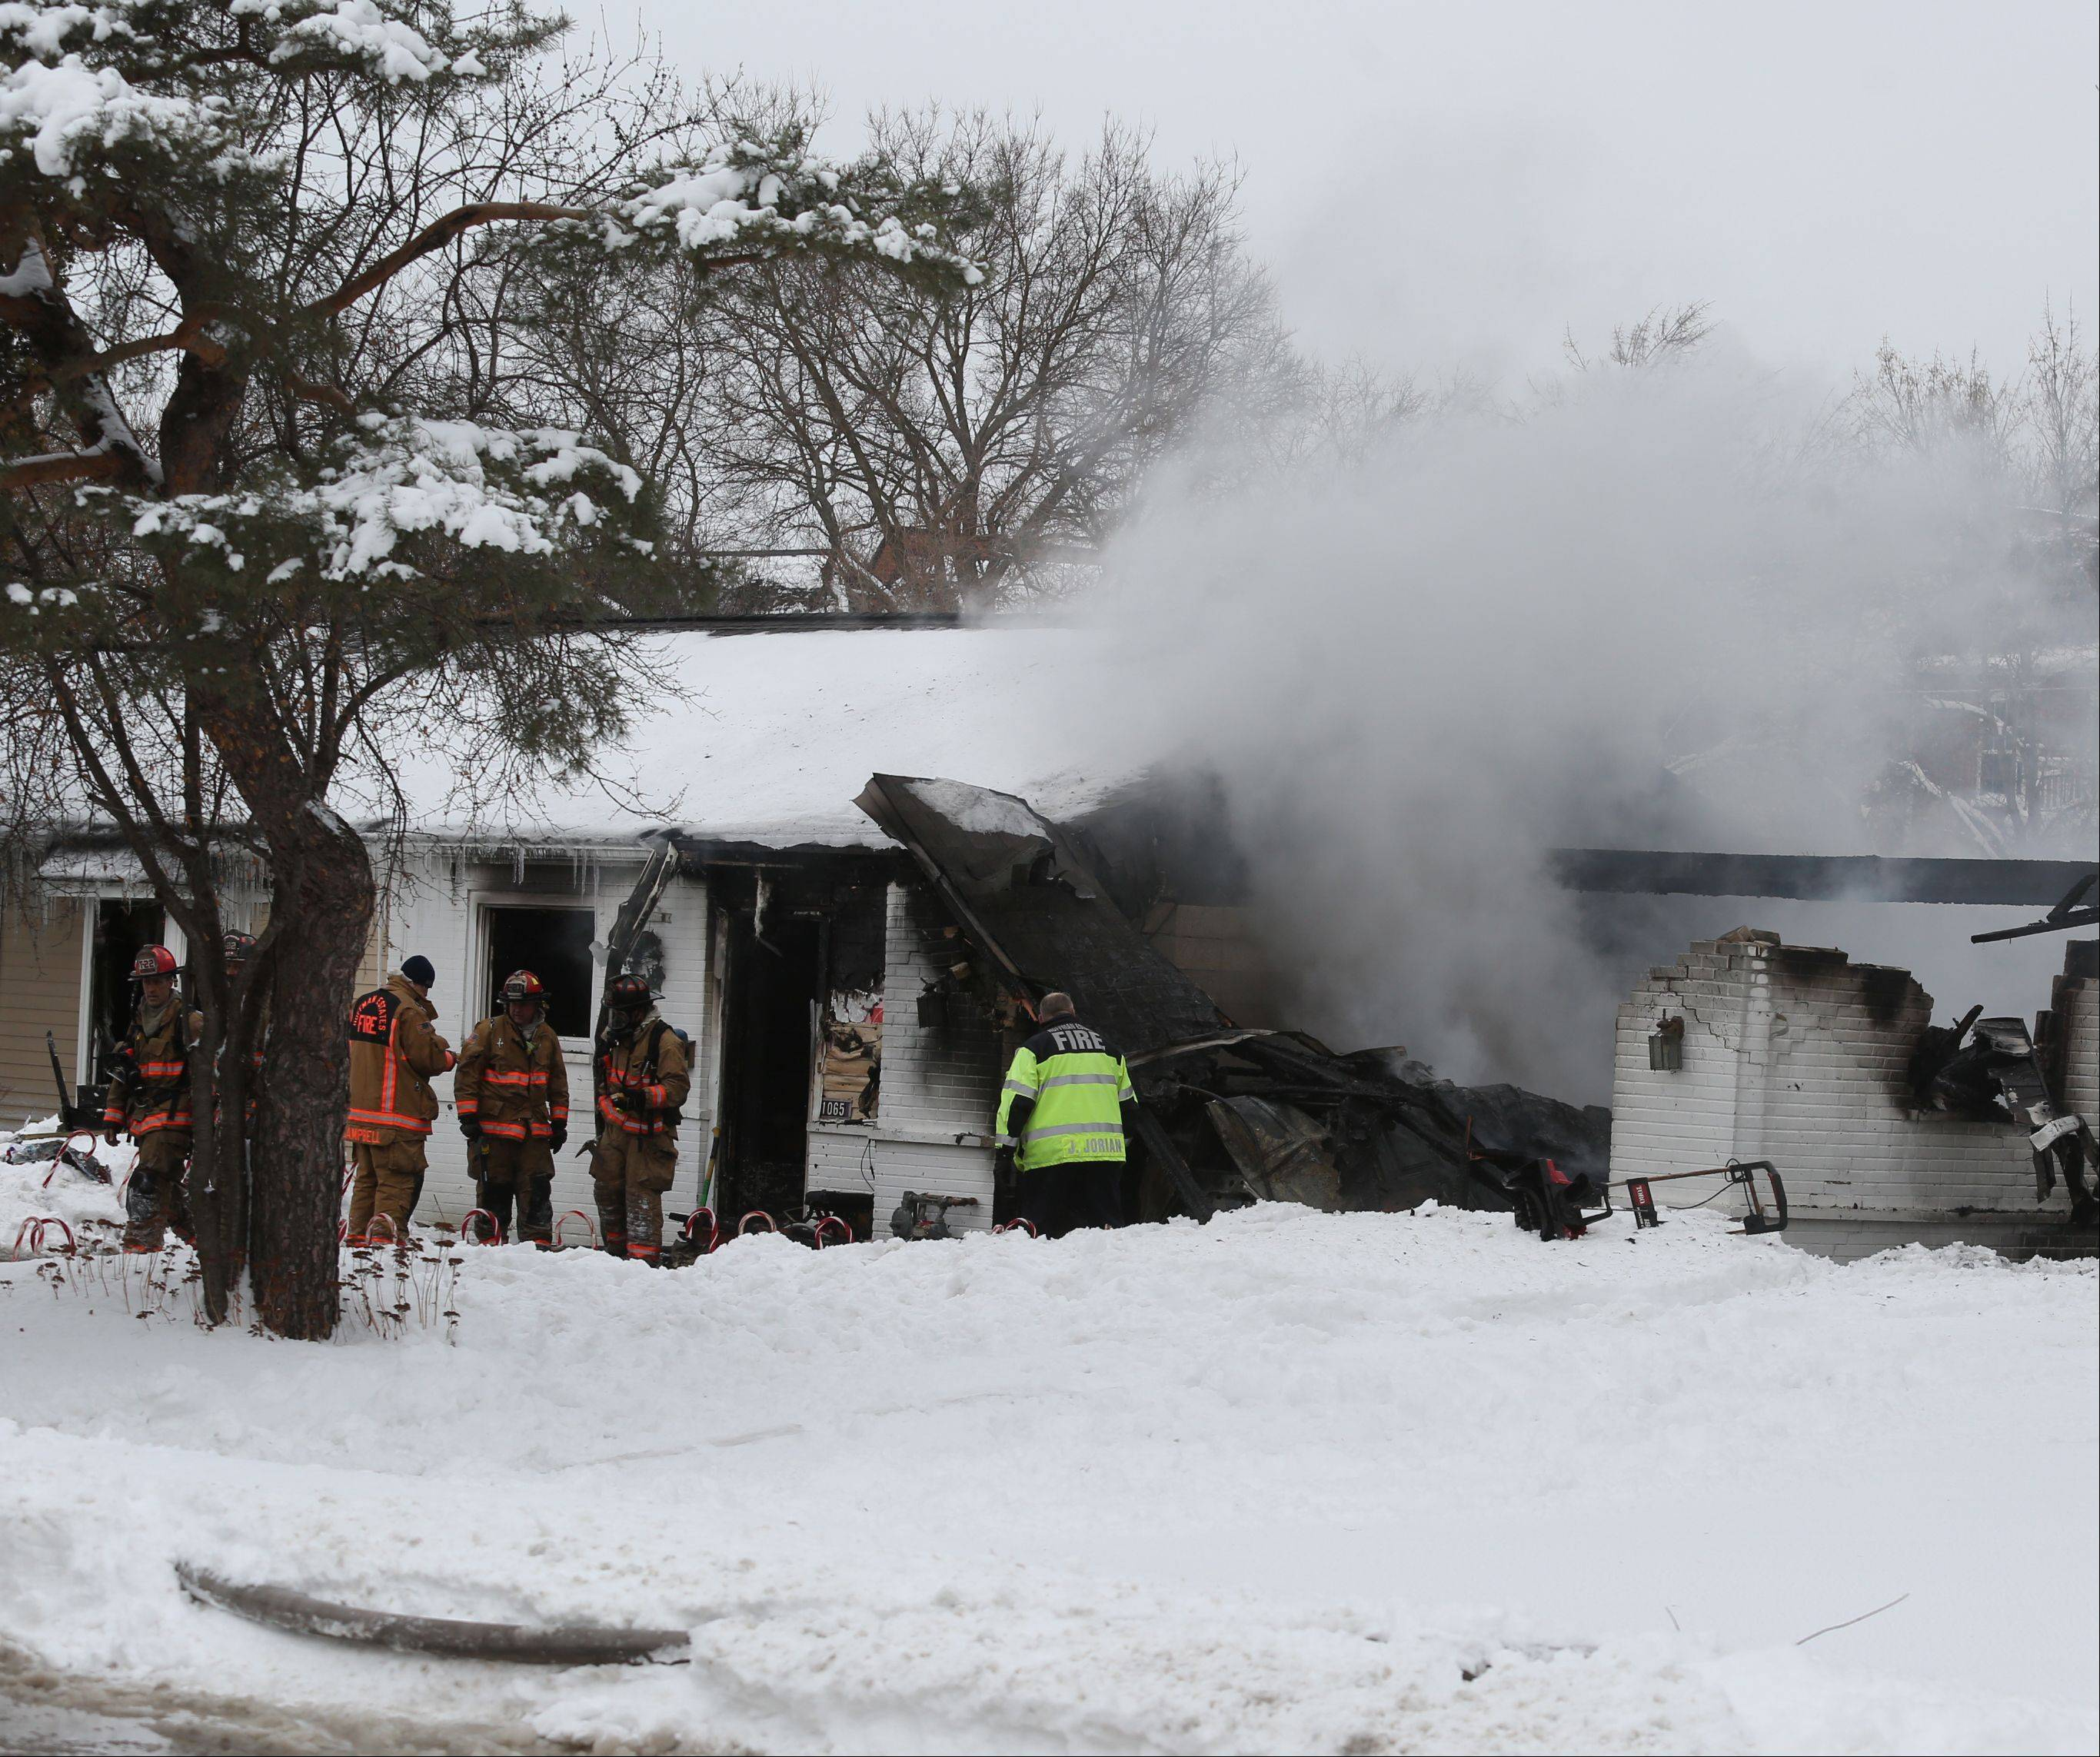 Firefighters responded to a house fire Wednesday afternoon on Basswood Street in Hoffman Estates. Two pets were later found dead, and the home was left completely uninhabitable.